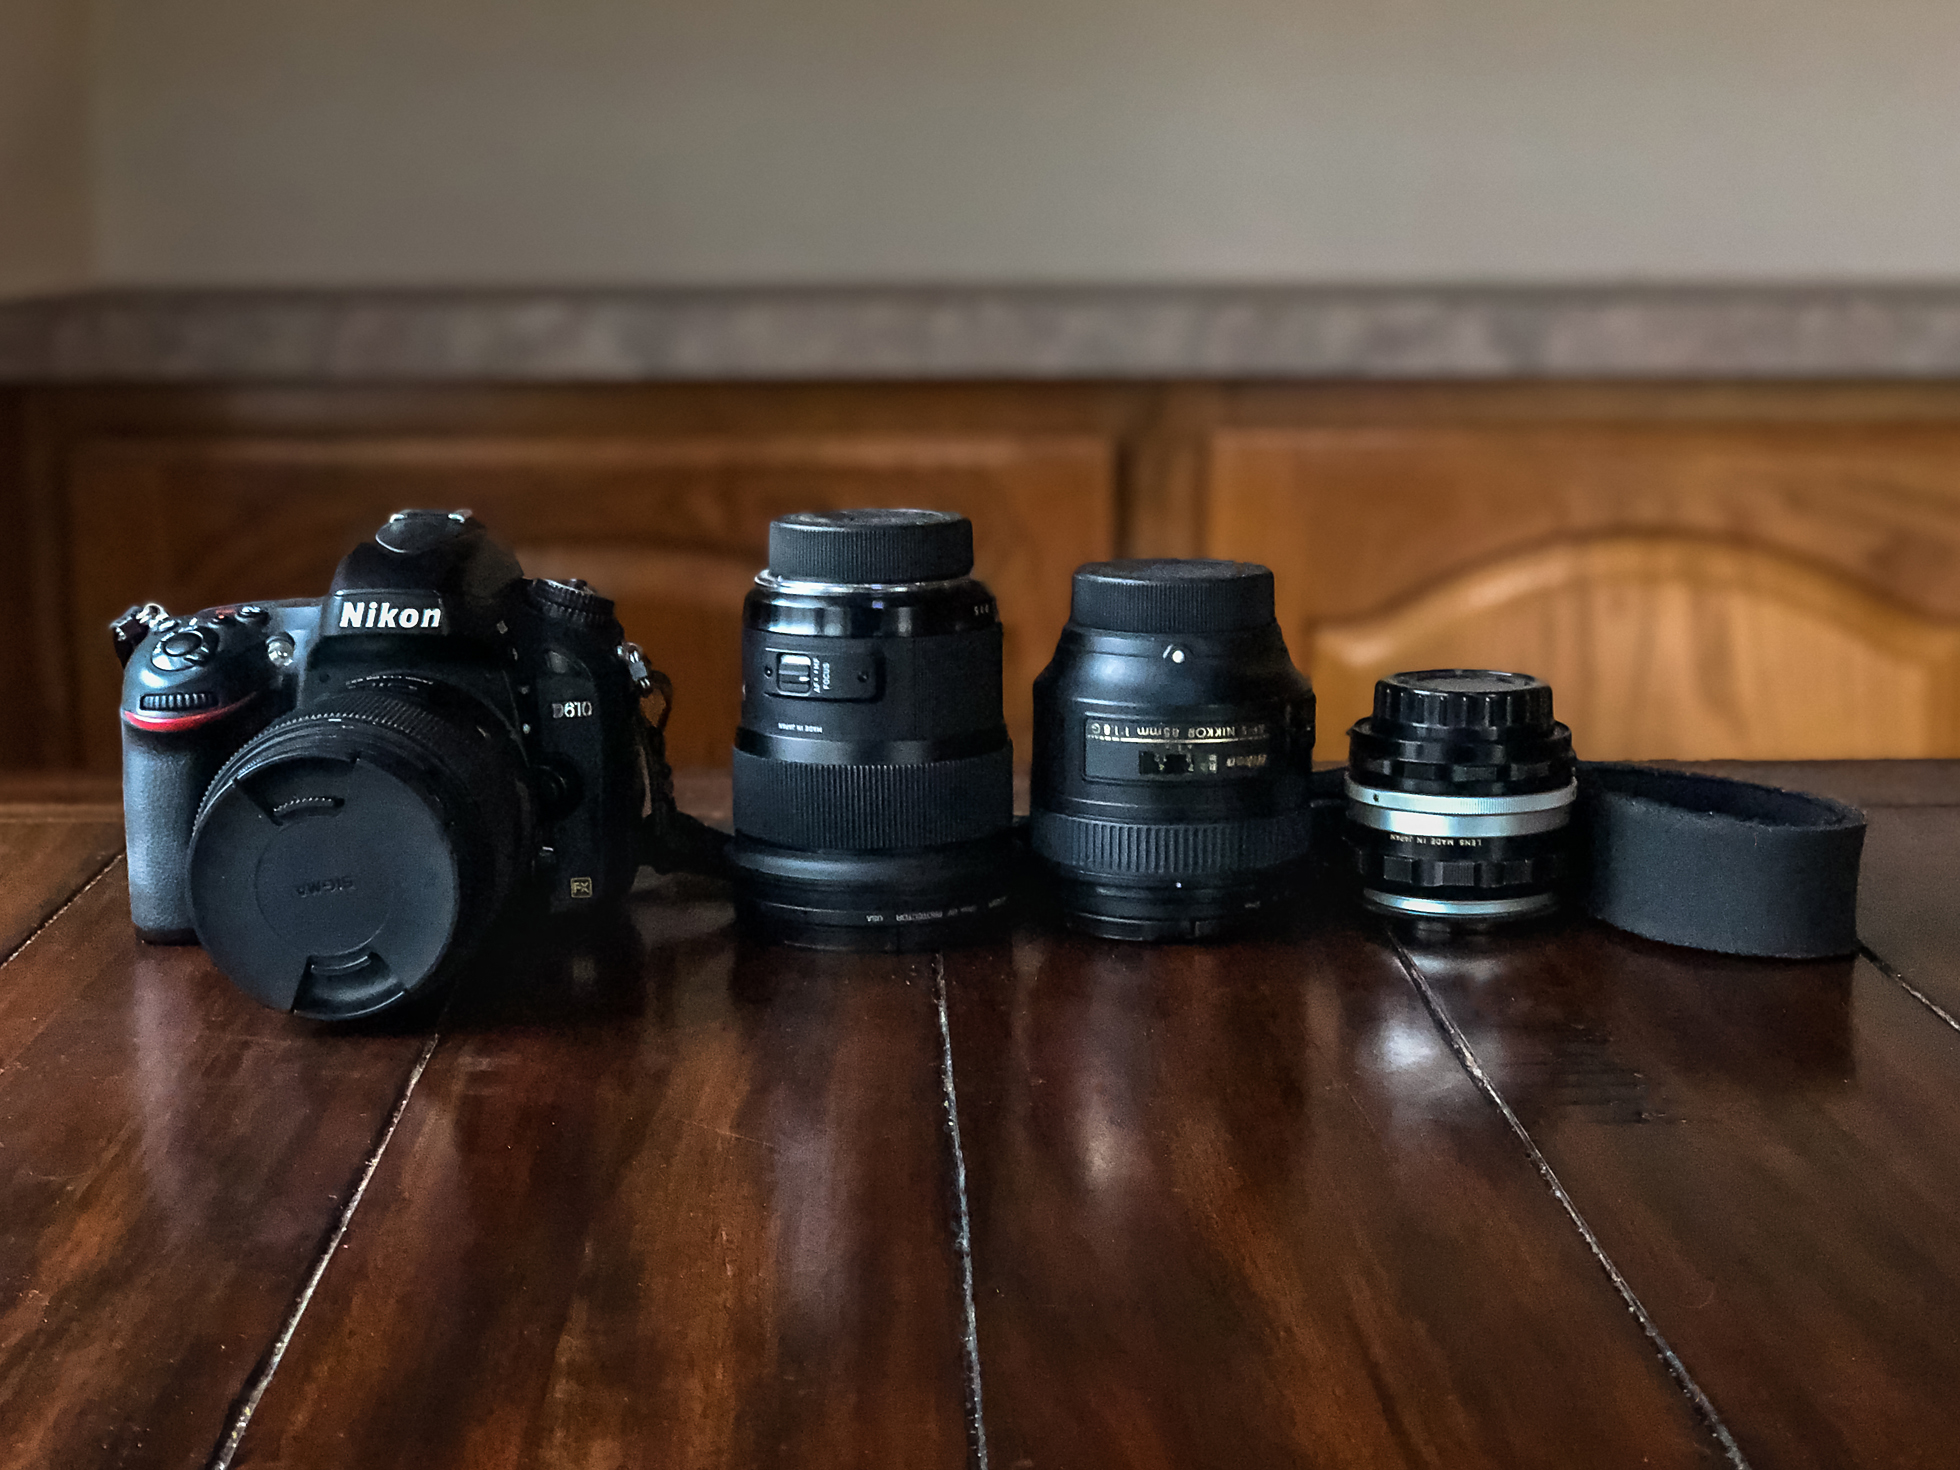 from left to right:Sigma Art 35mm 1.4 (on the camera), Sigma Art 24mm 1.4, Nikon 85mm 1.8, Vintage Nikkor 50mm (used only for freelensing and reverse macro)